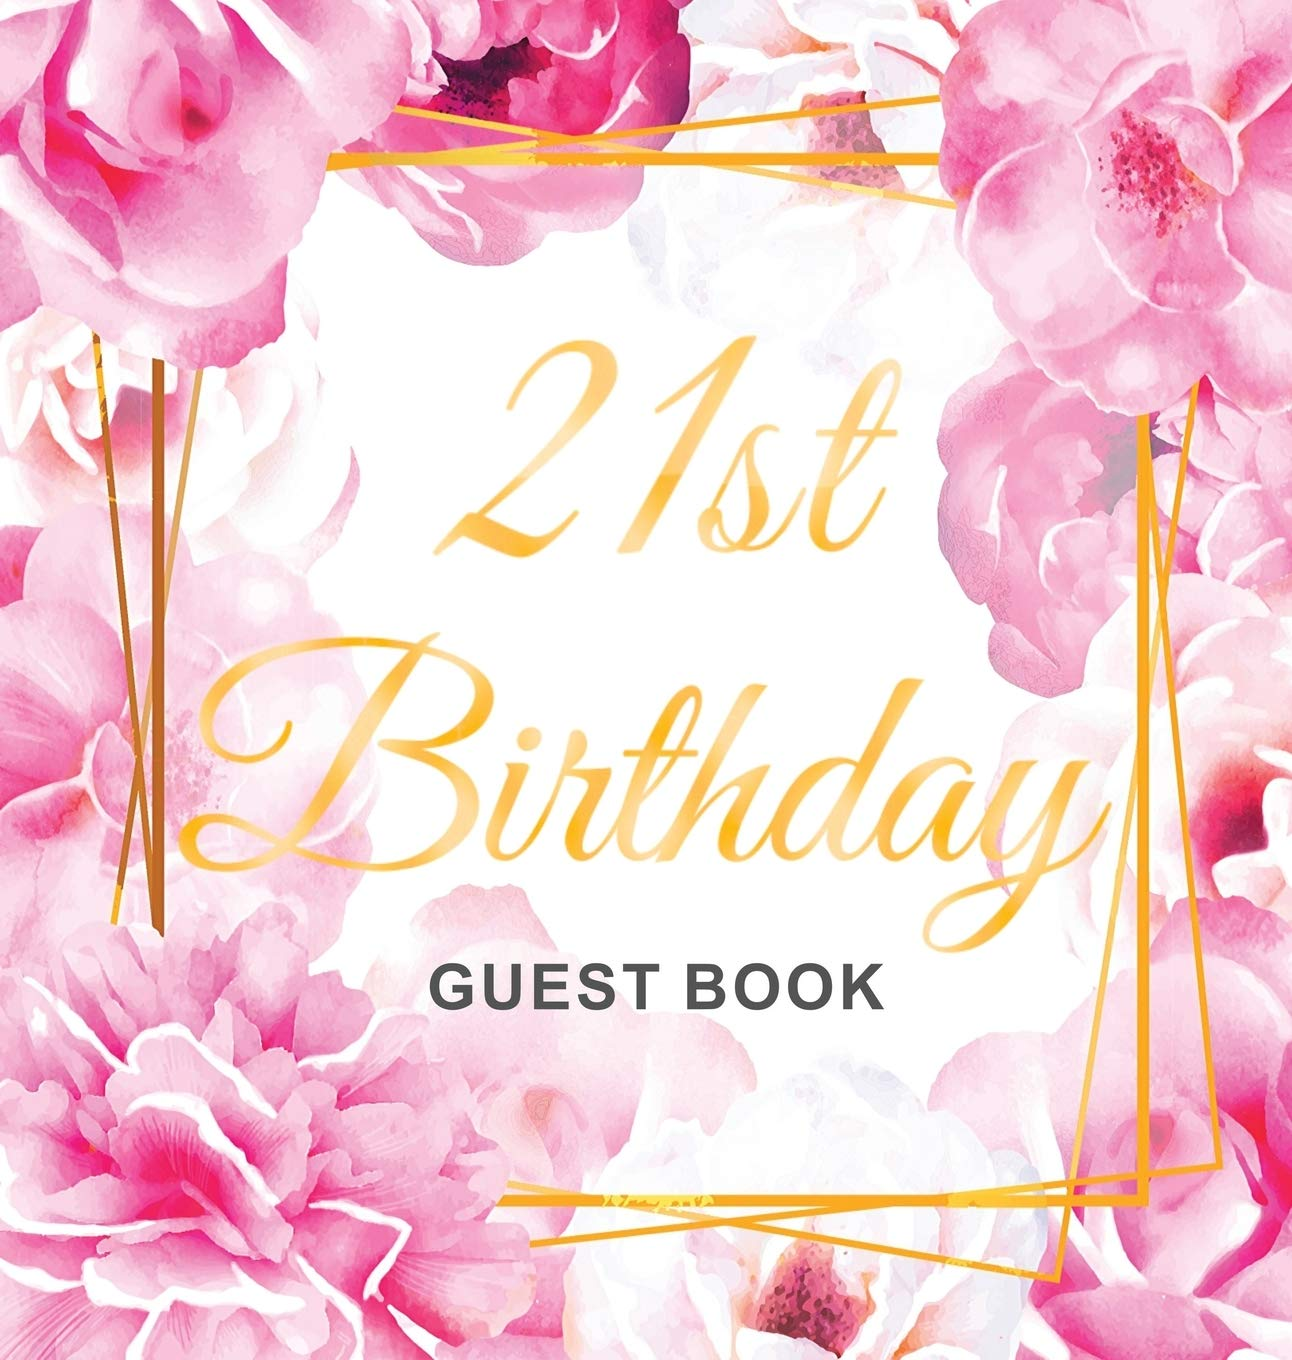 21st Birthday Guest Book: Gold Frame and Letters Pink Roses Floral Watercolor Theme, Best Wishes from Family and Friends to Write in, Guests Sign in for Party, Gift Log, Hardback